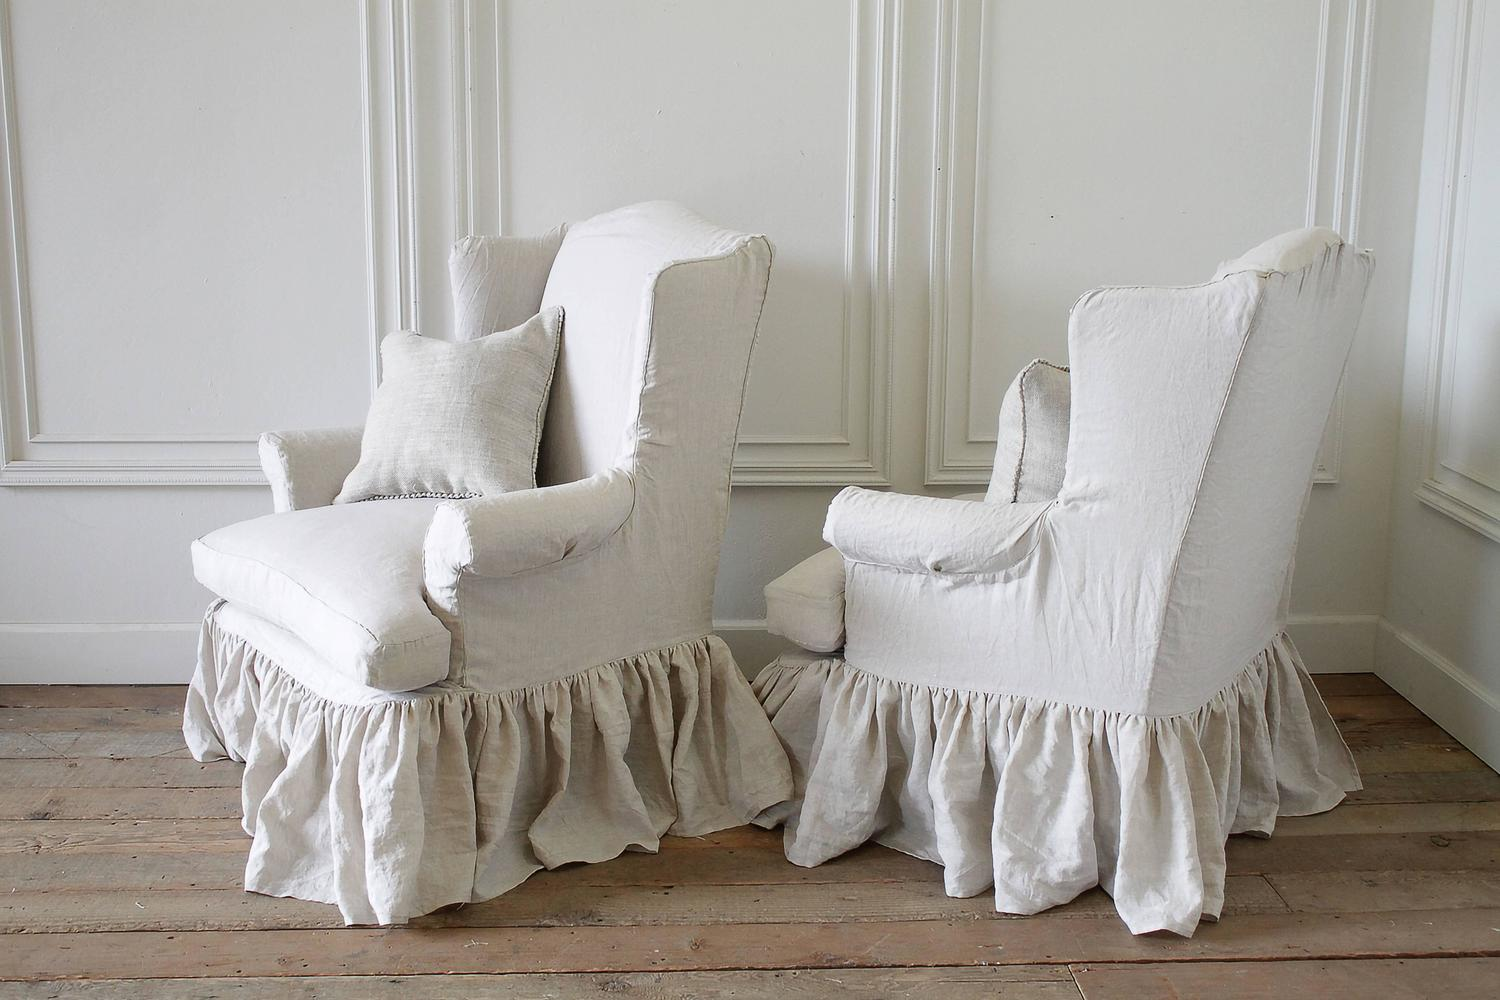 wingback chair covers ireland office chairs without wheels and arms vintage slip covered in organic irish